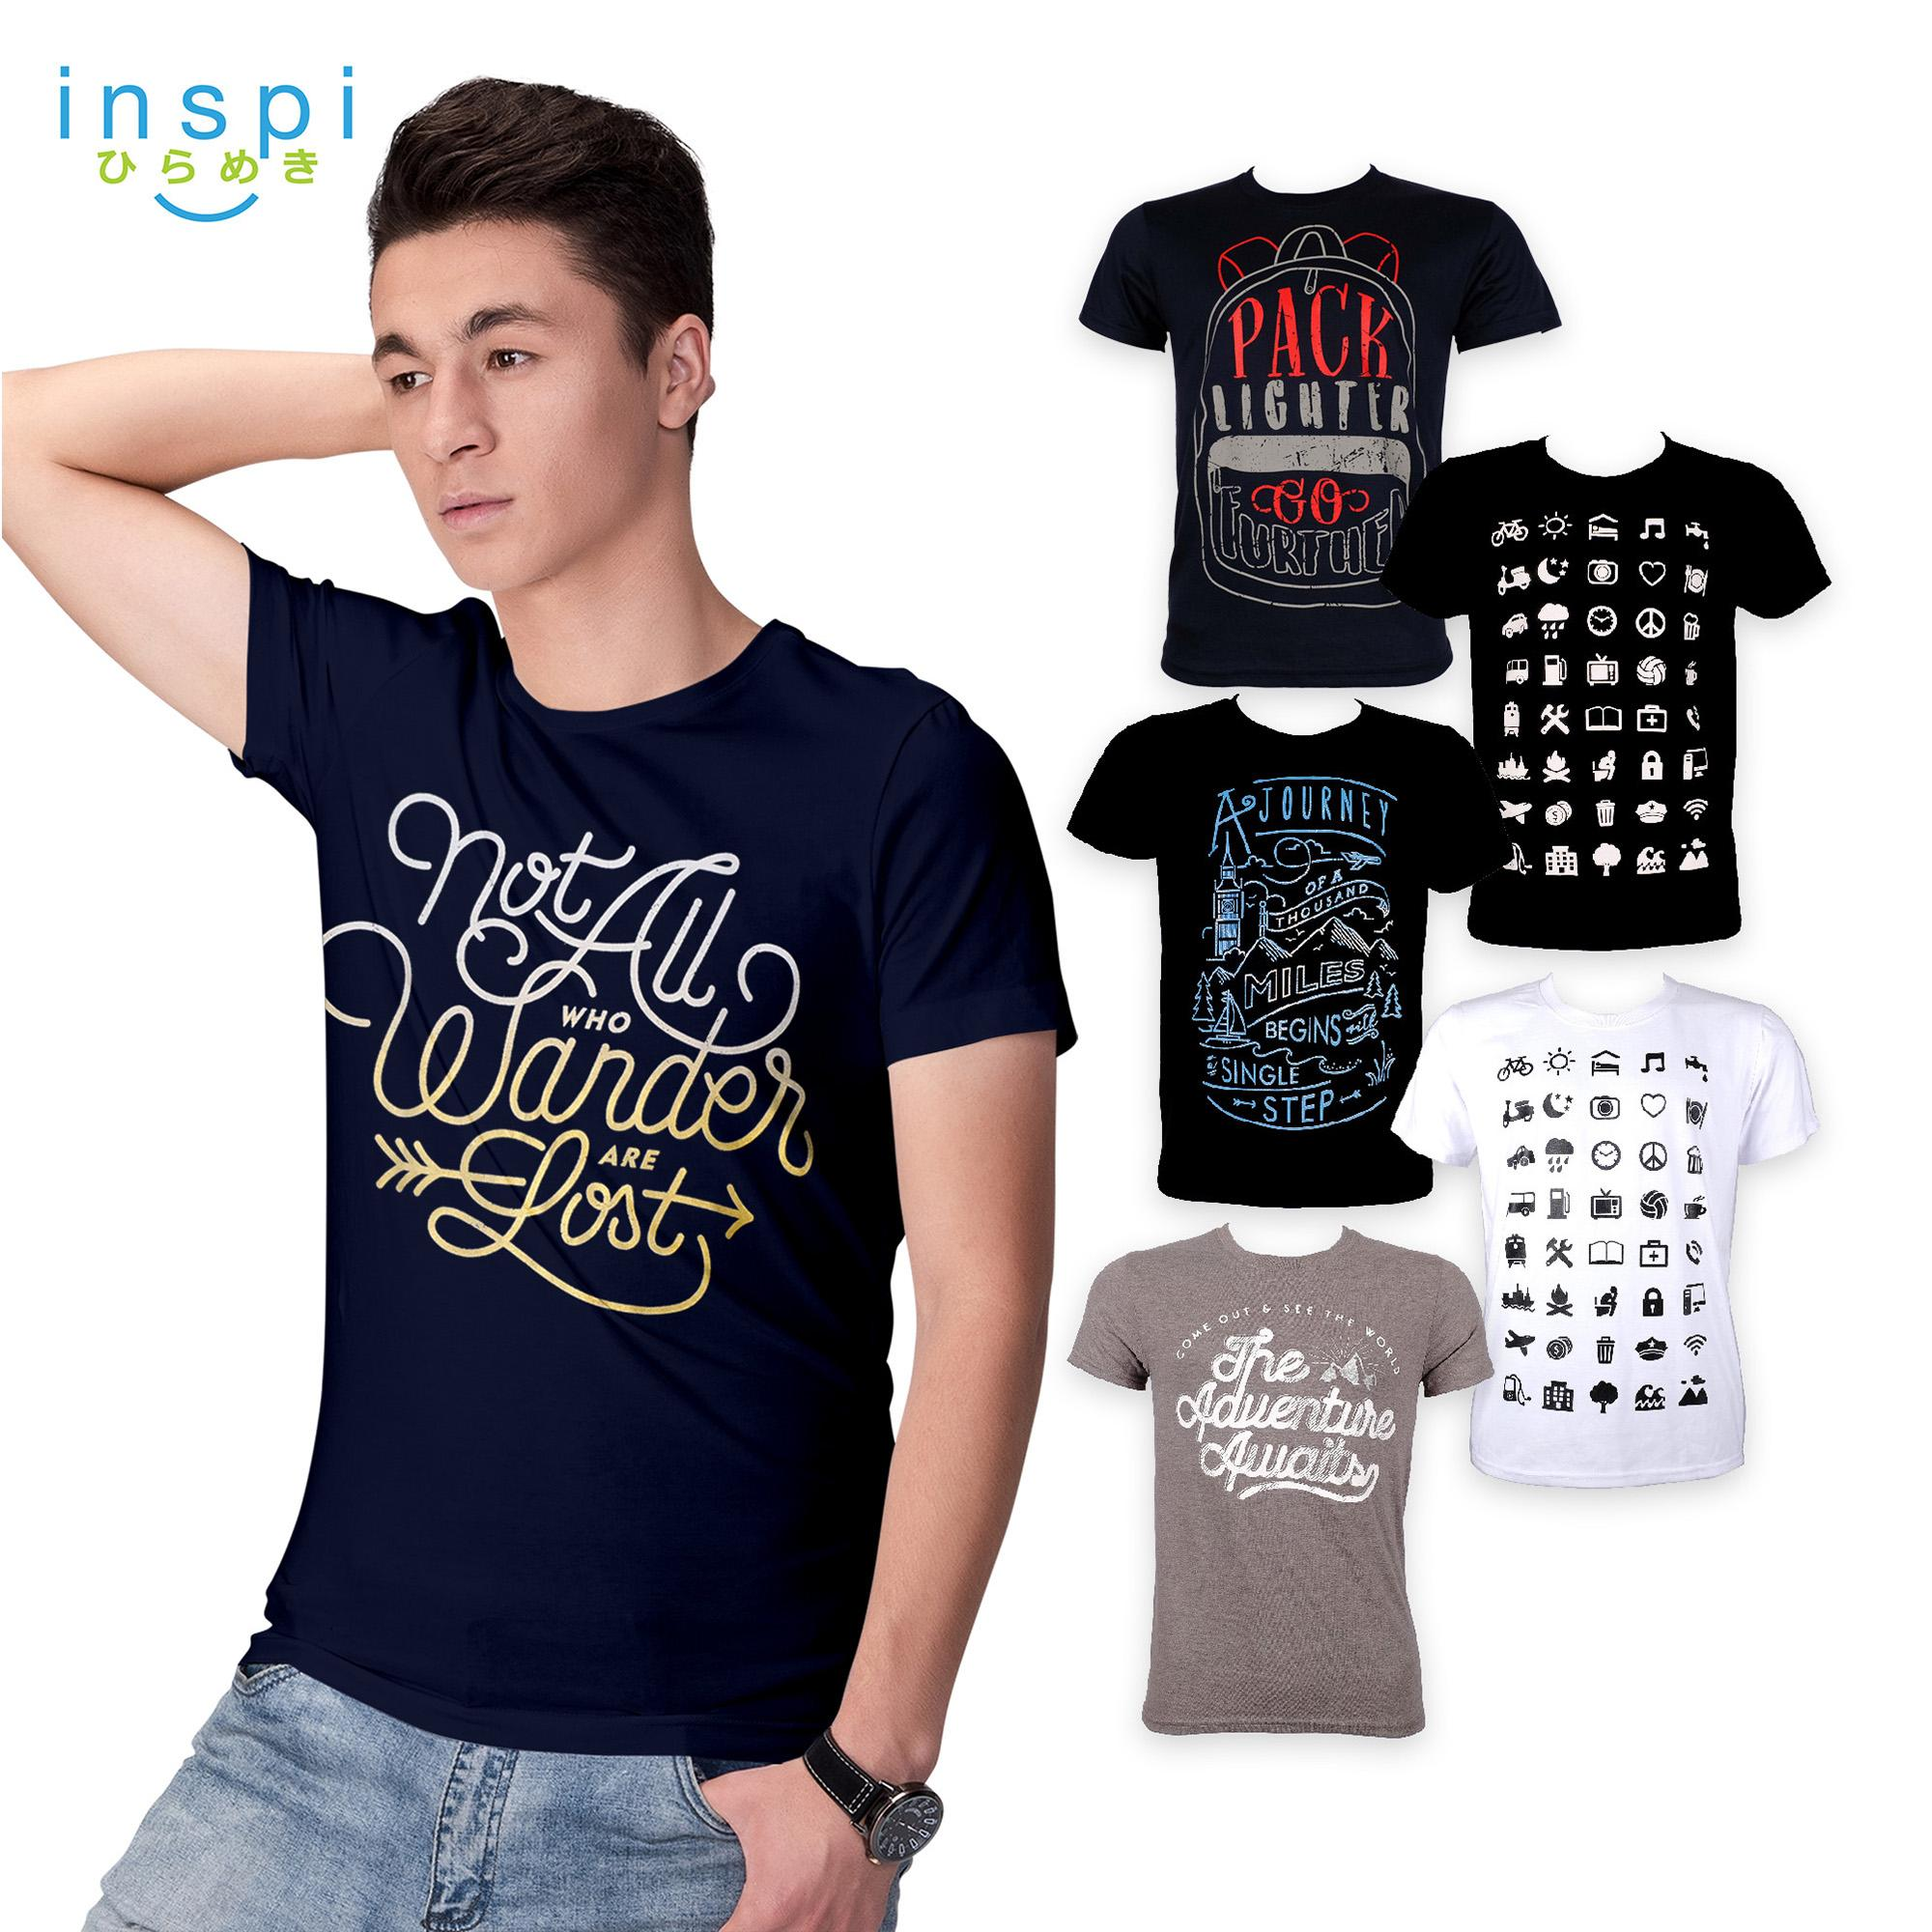 T Shirt Clothing For Men Mens Online Brands Prices Reviews In Philippines Lazada Ph